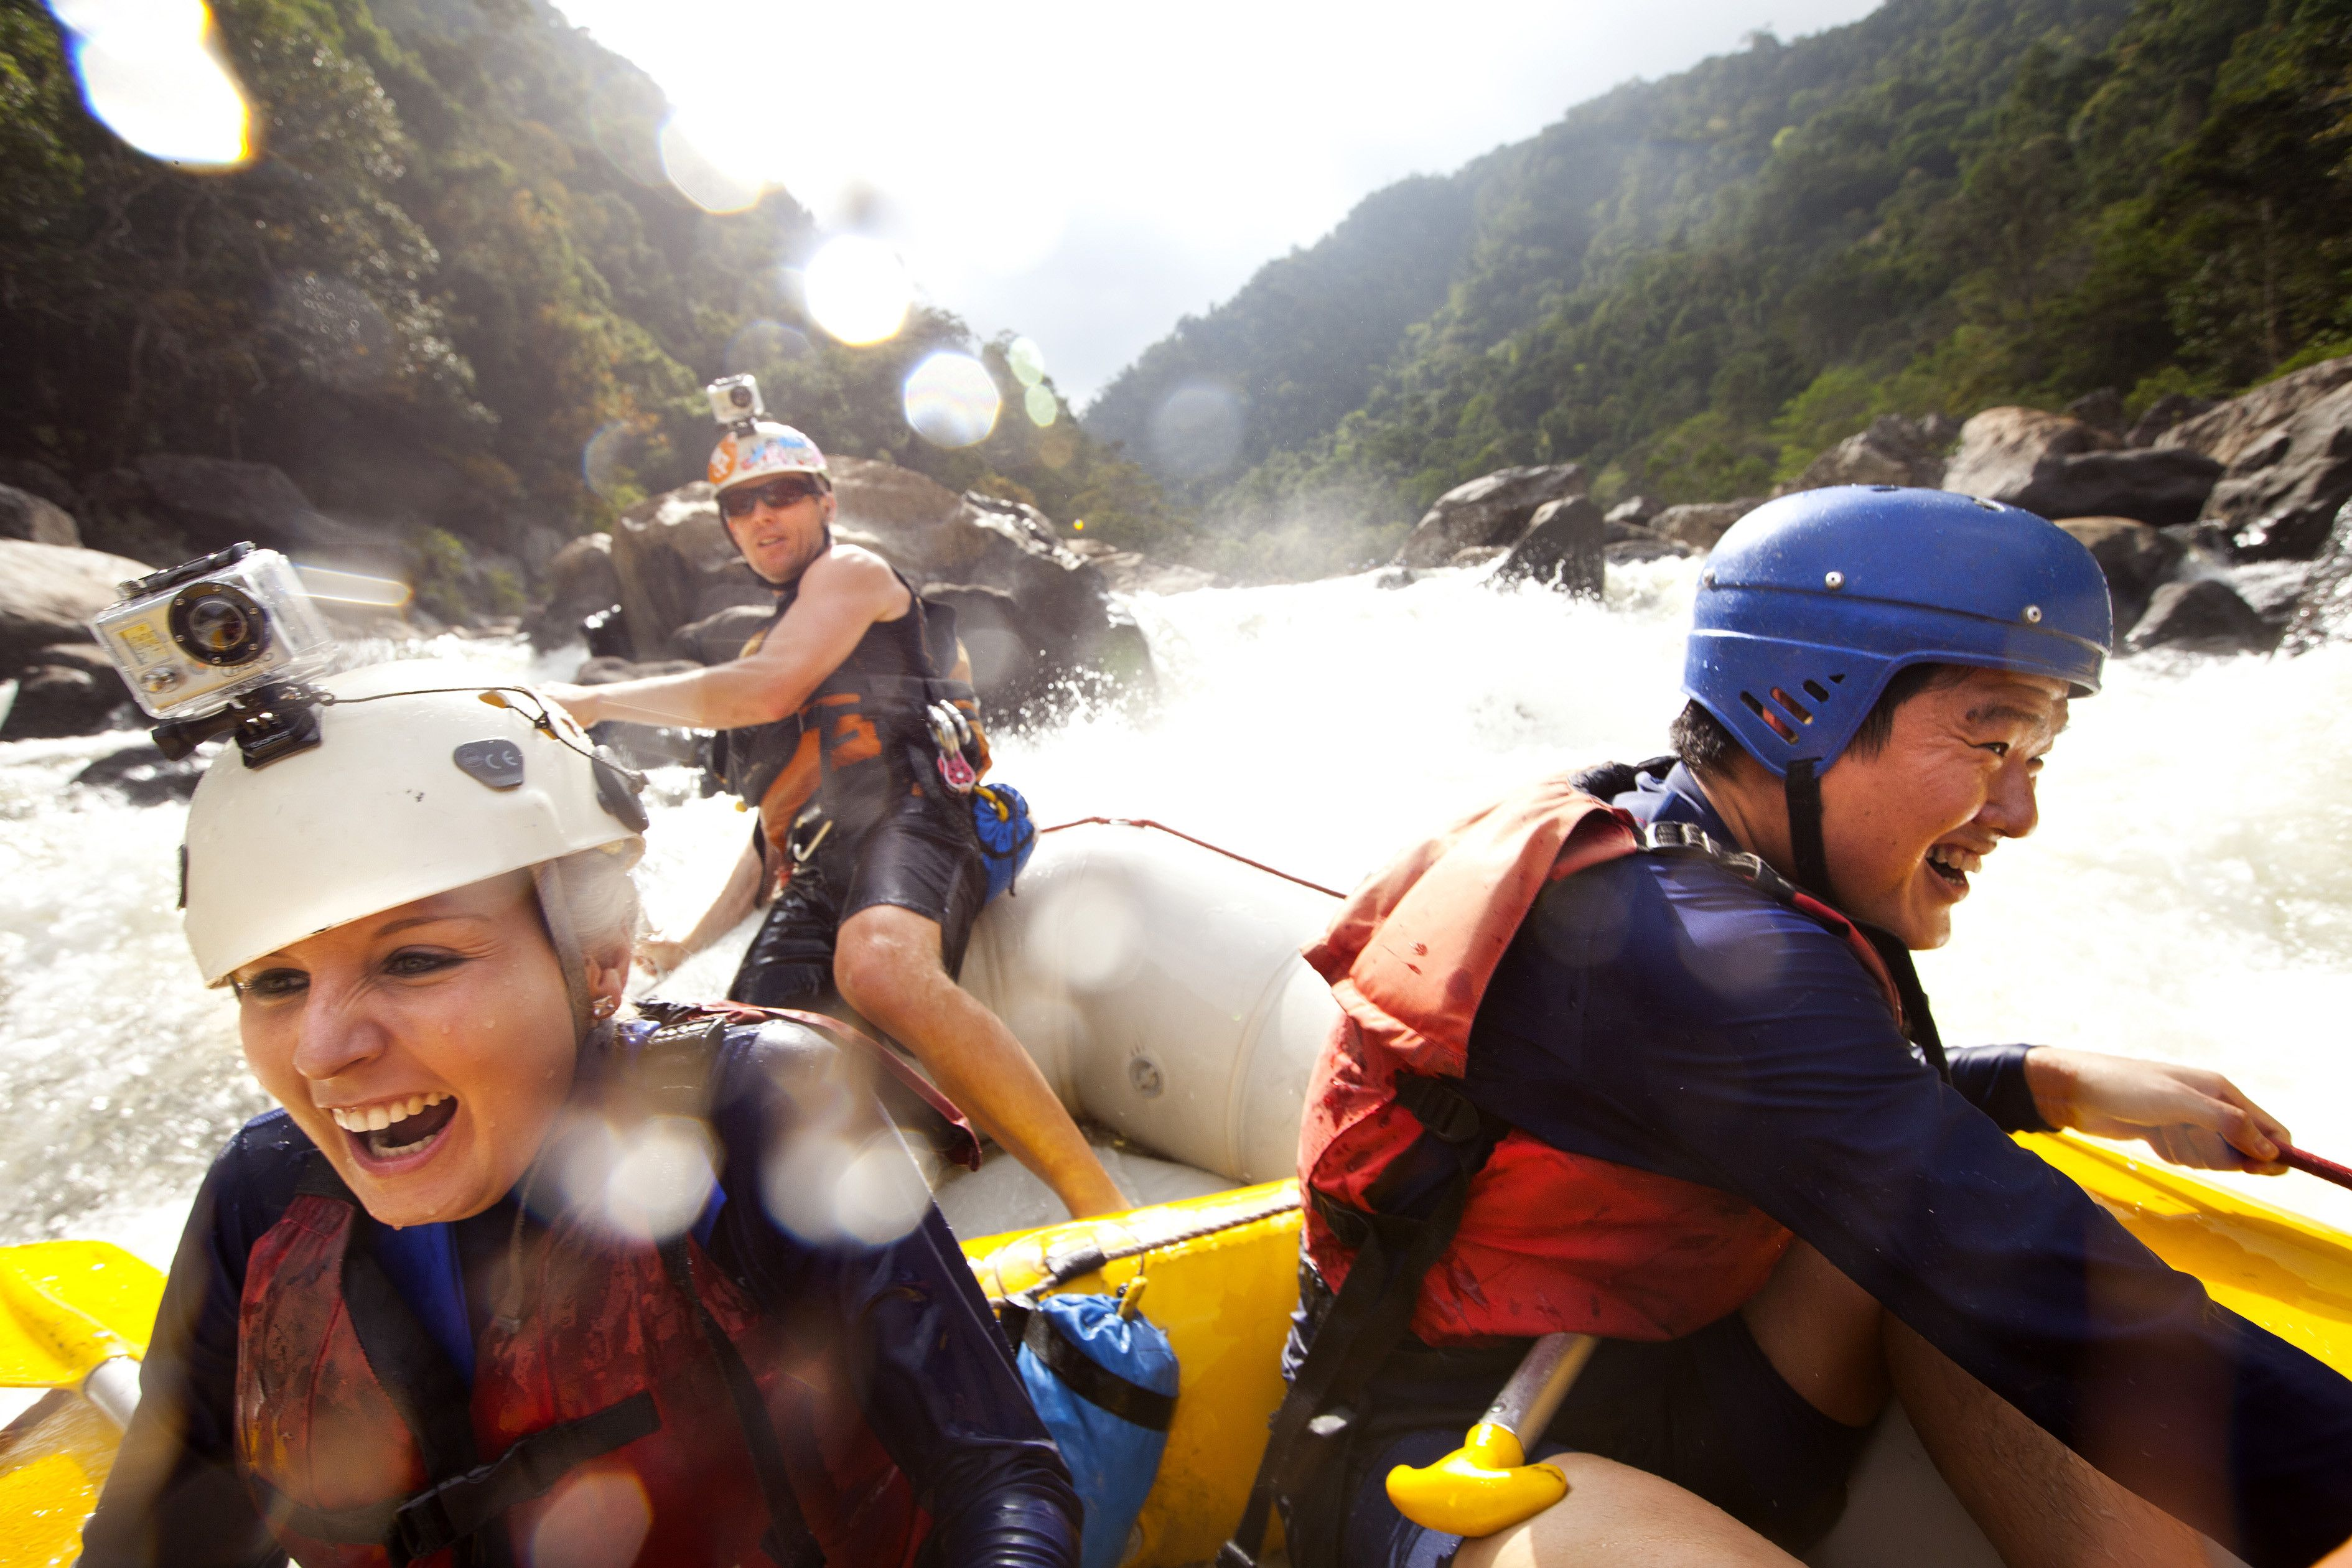 Extreme Tully River White Water Rafting from $185 pp